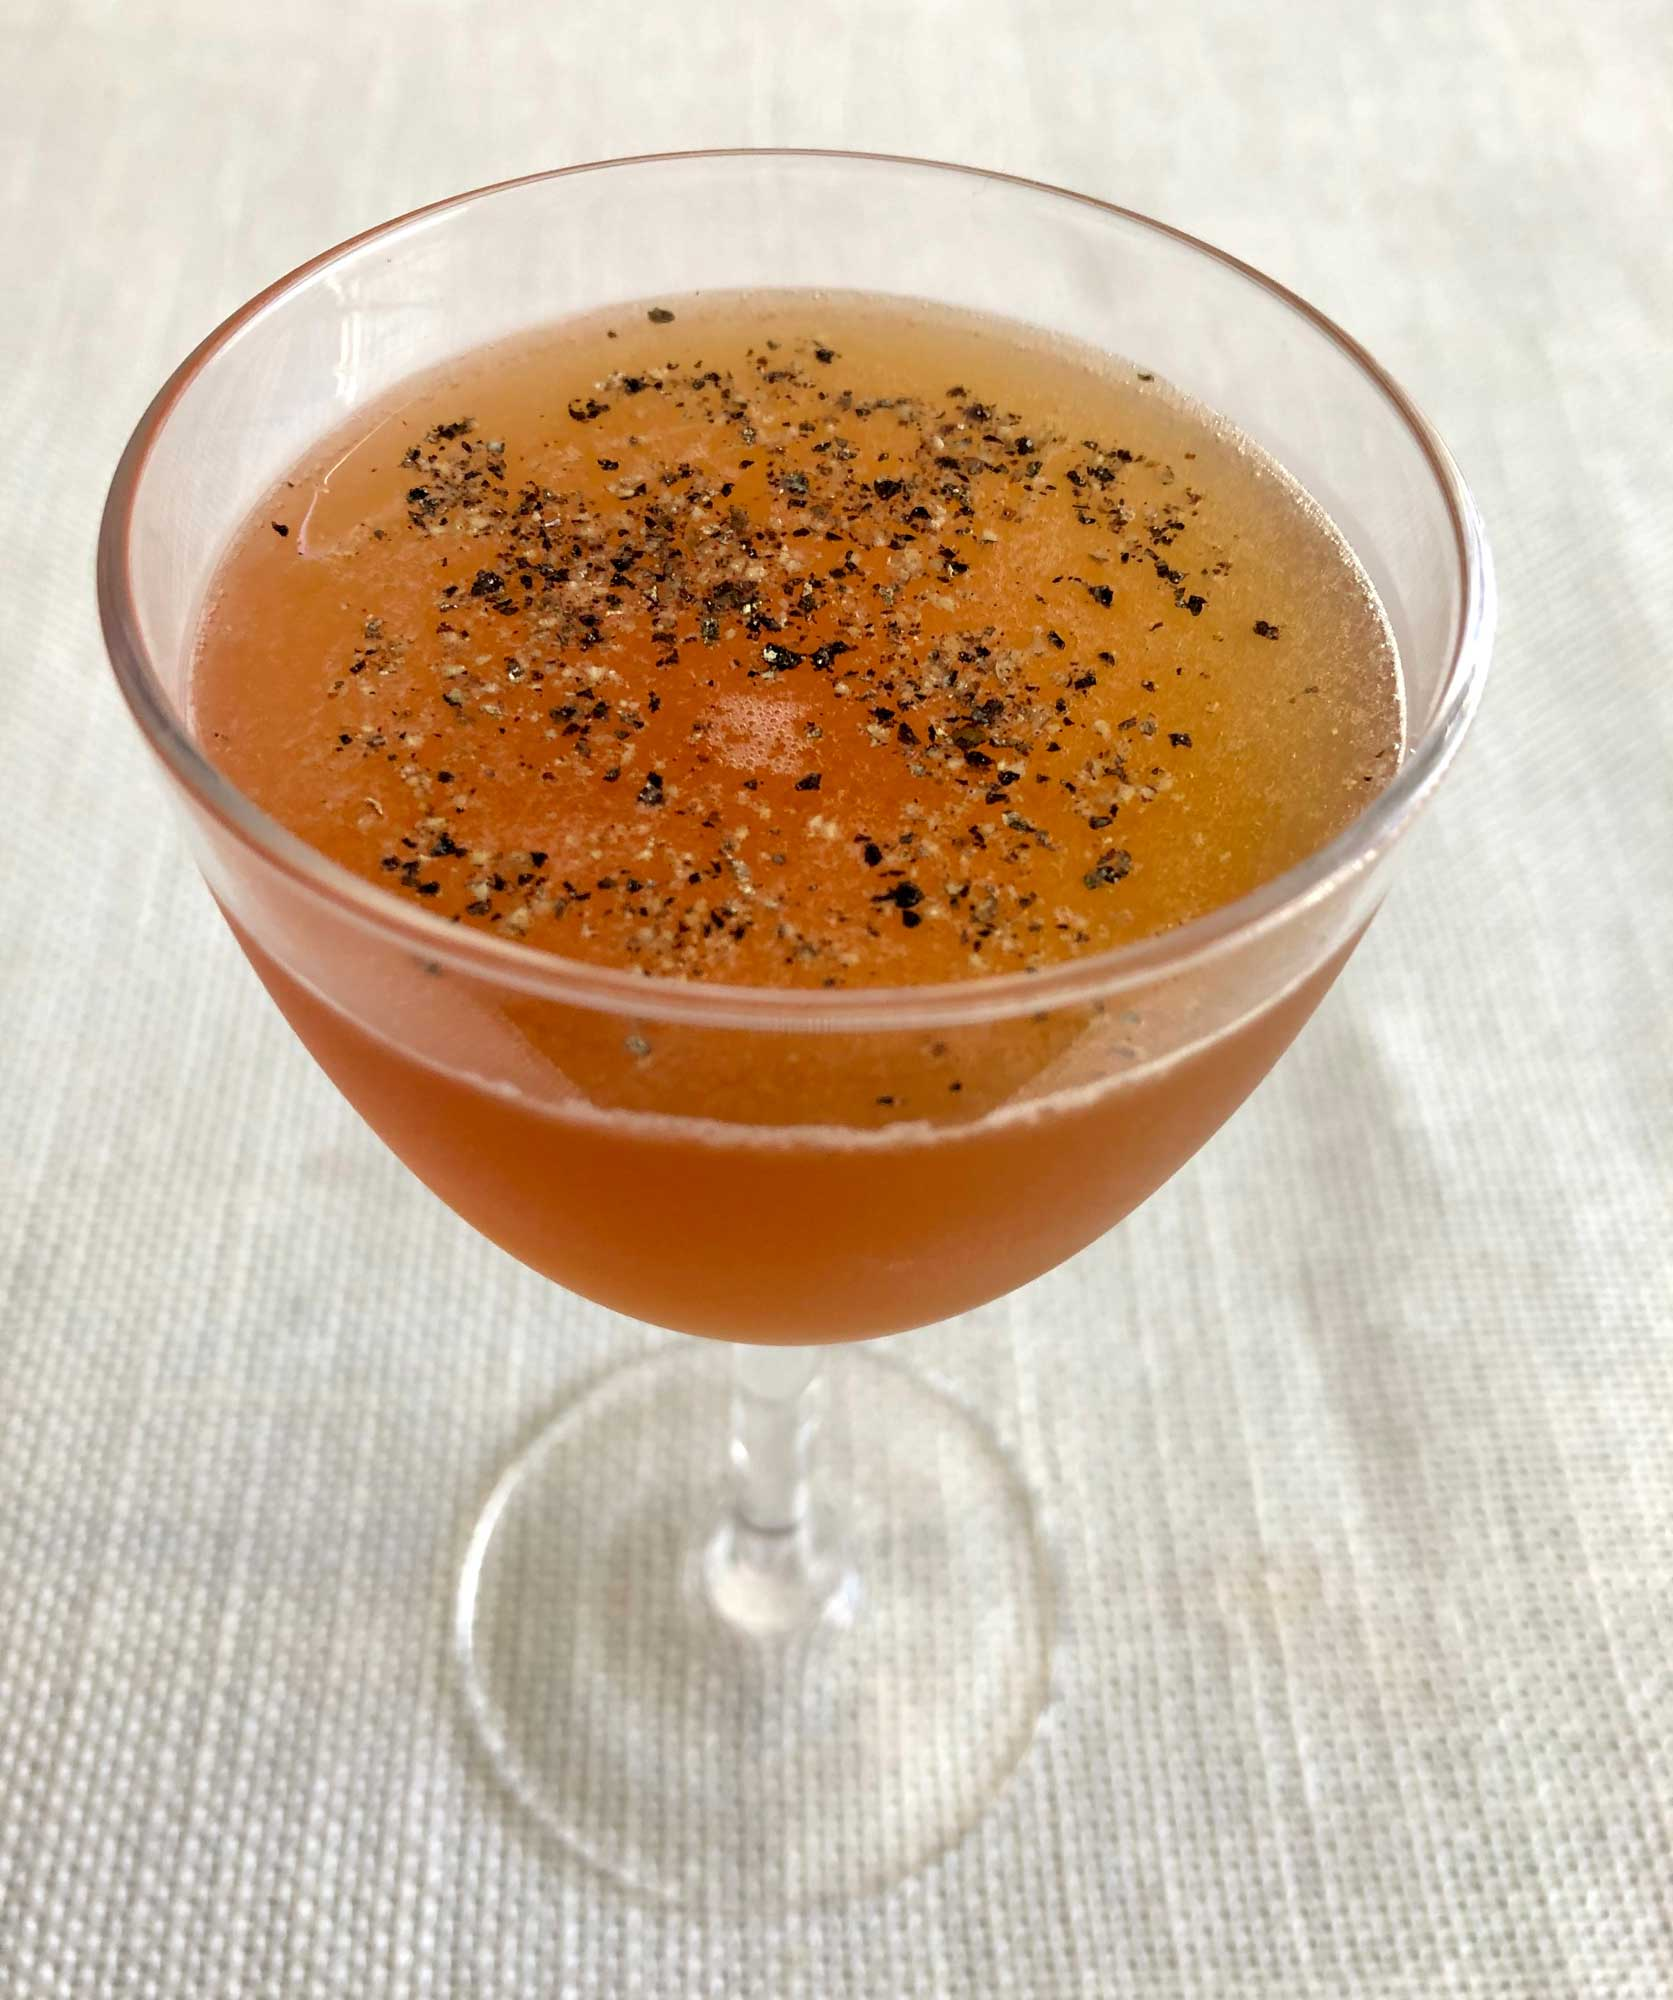 An example of the Tellicherry Cruiser, the mixed drink (cocktail), variation of the Philomel from the Savoy Cocktail Book, featuring Matifoc Rancio Sec, orange juice, Smith & Cross Traditional Jamaica Rum, Bonal Gentiane-Quina, and Byrrh Grand Quinquina; photo by Lee Edwards